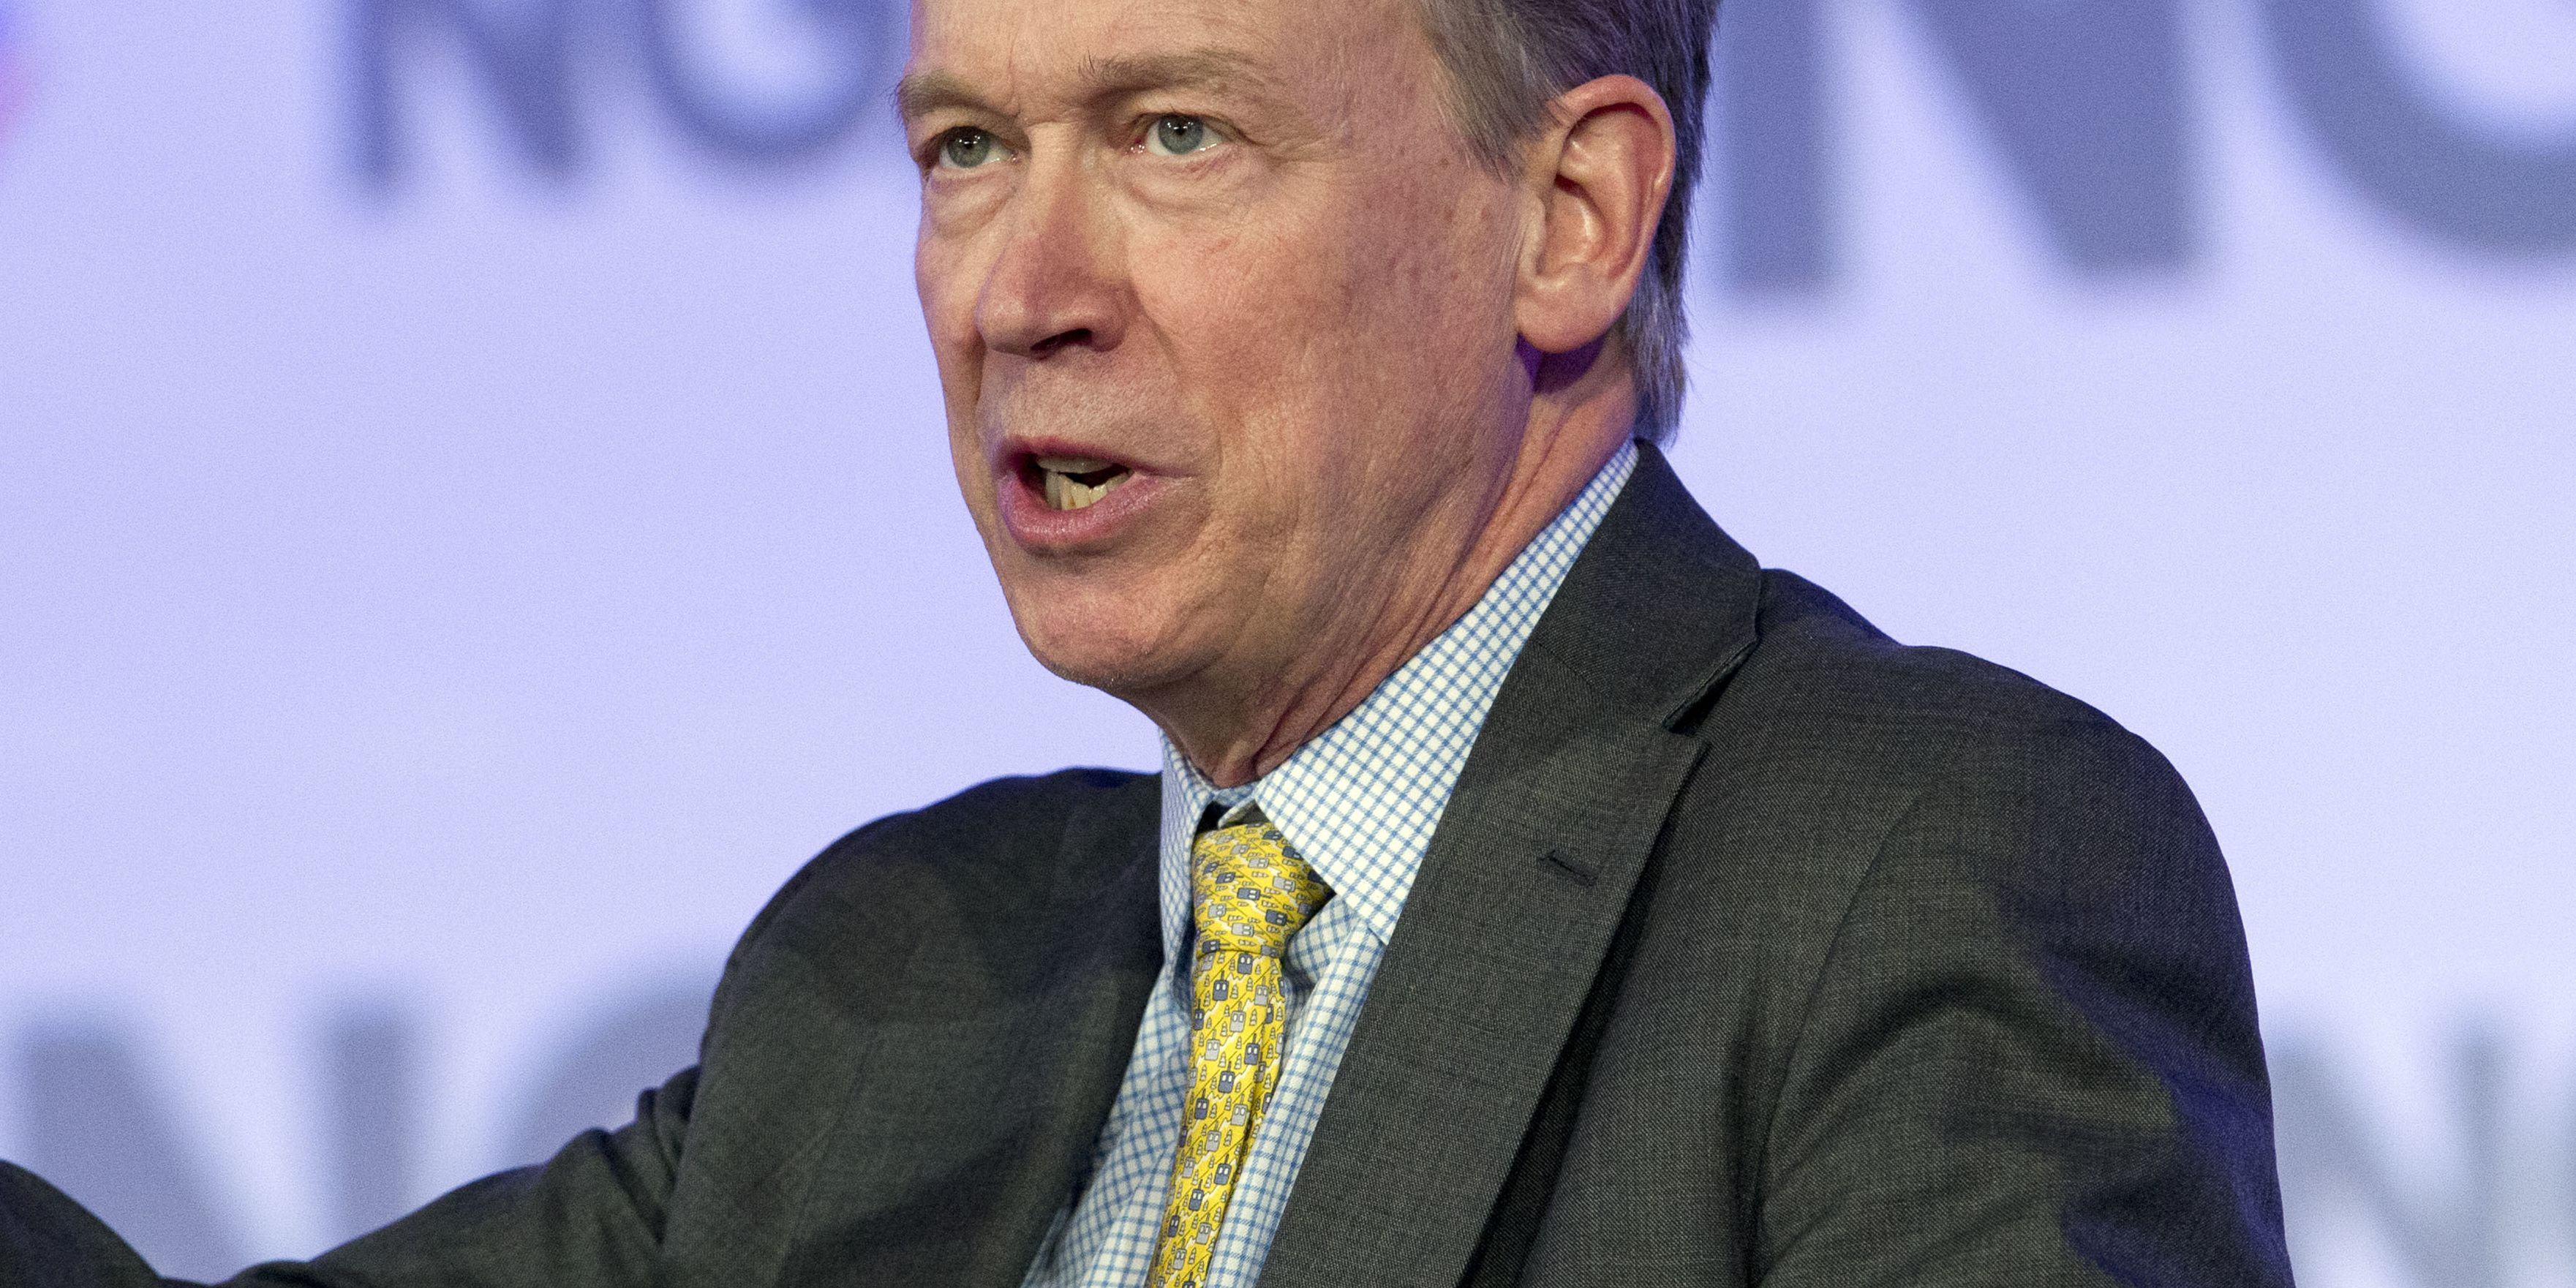 Former Colorado Gov. Hickenlooper joins 2020 presidential race